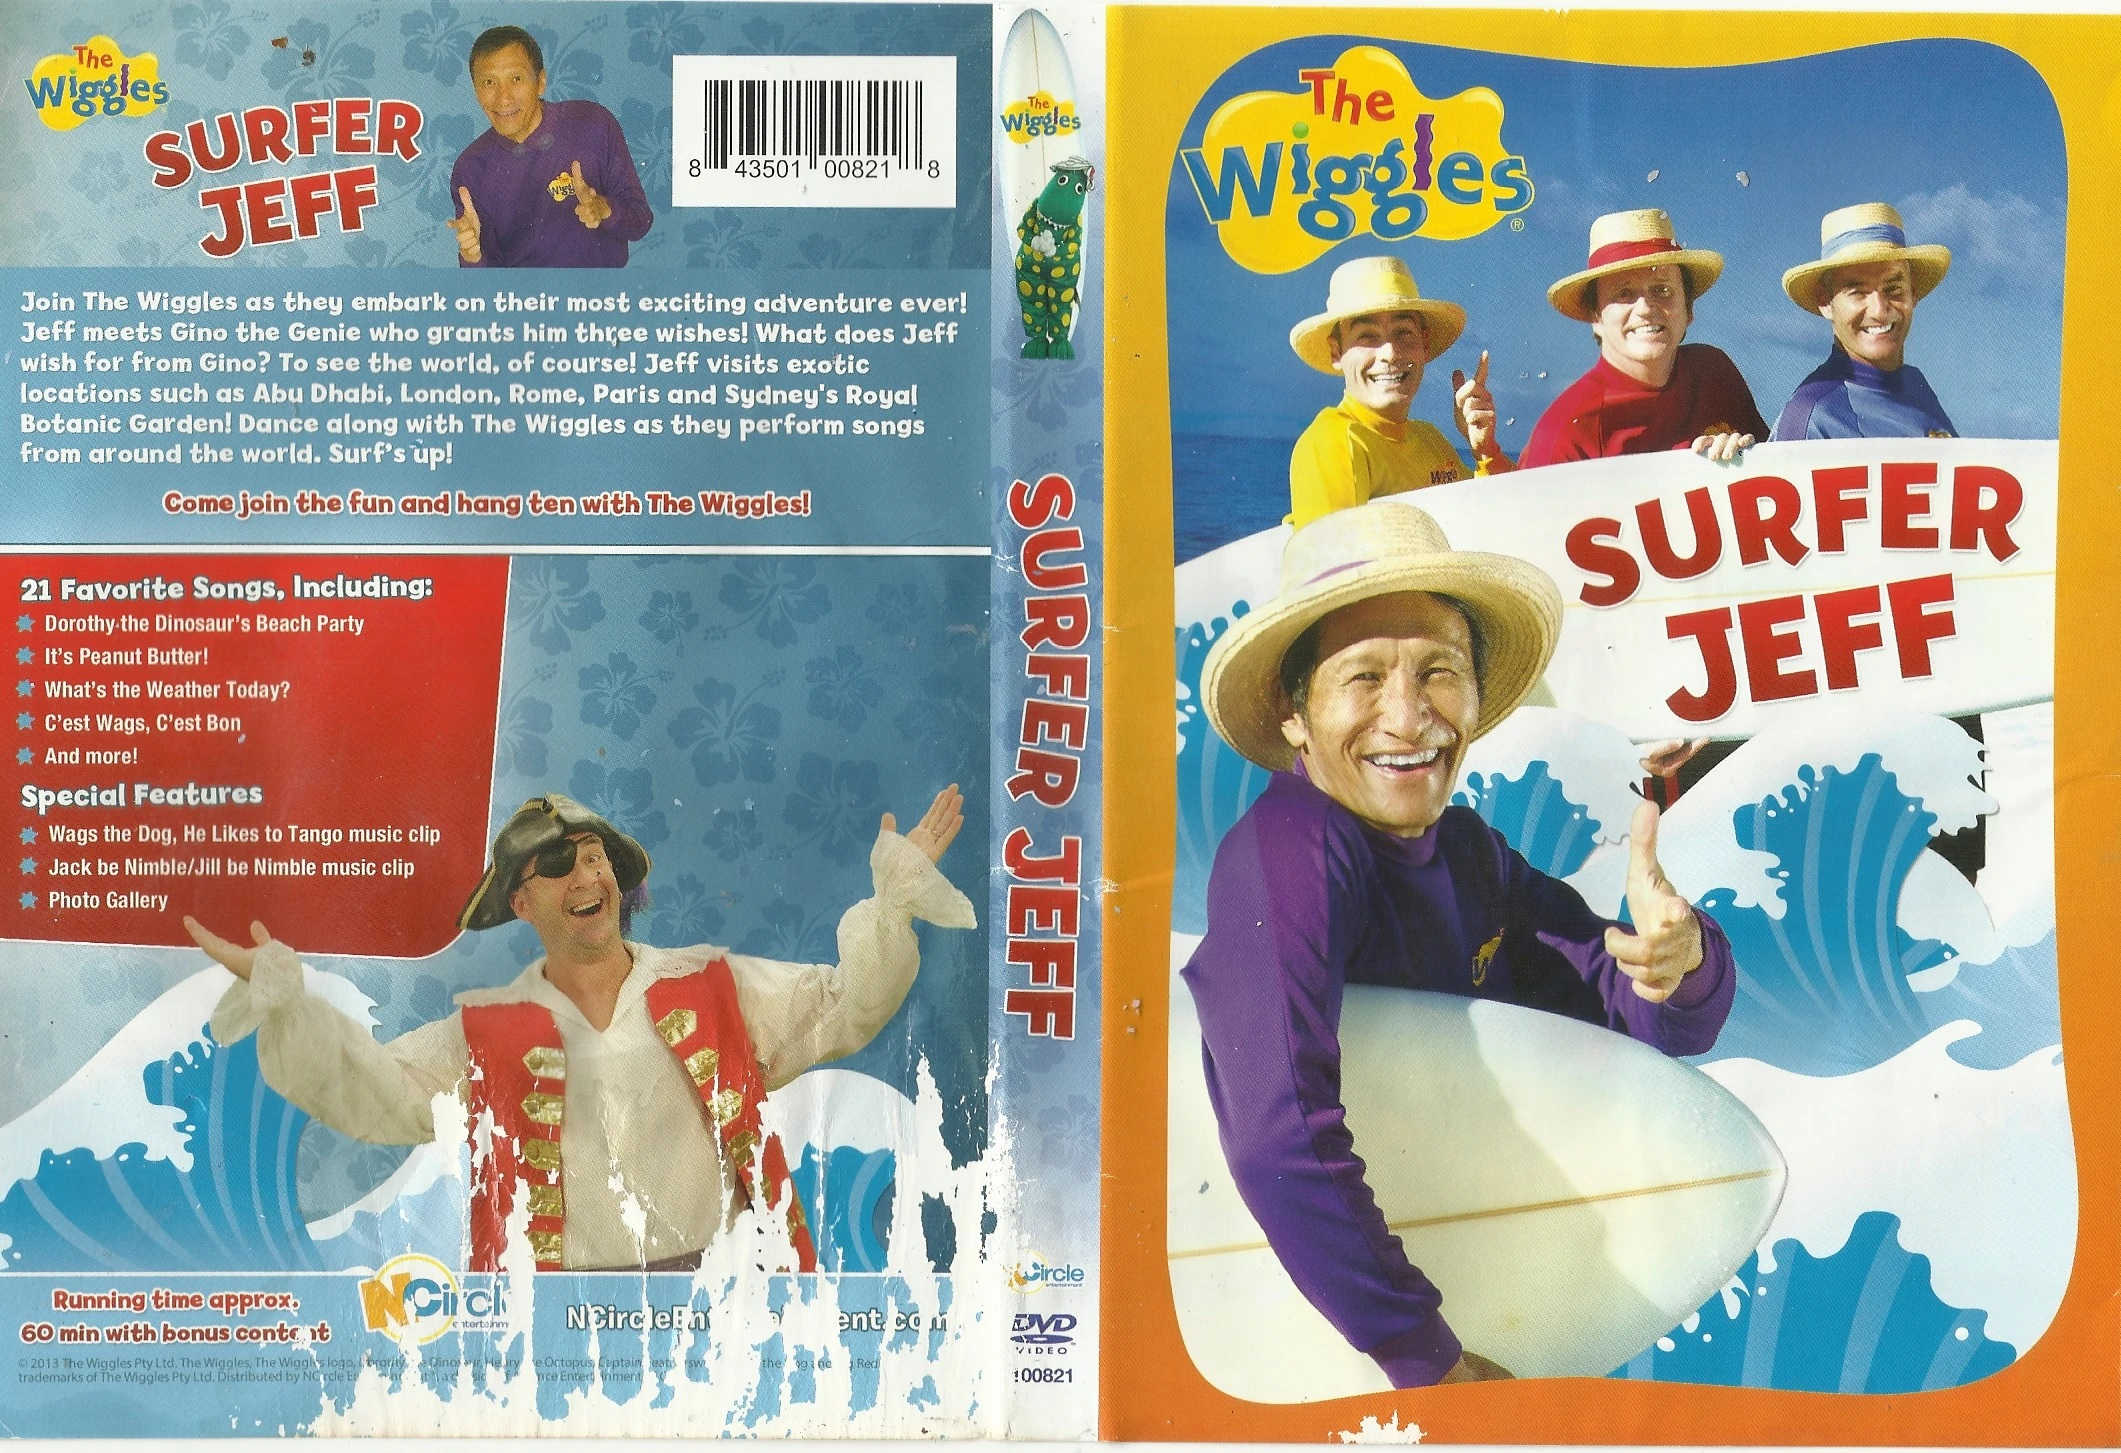 The Wiggles: Surfer Jeff (2012)